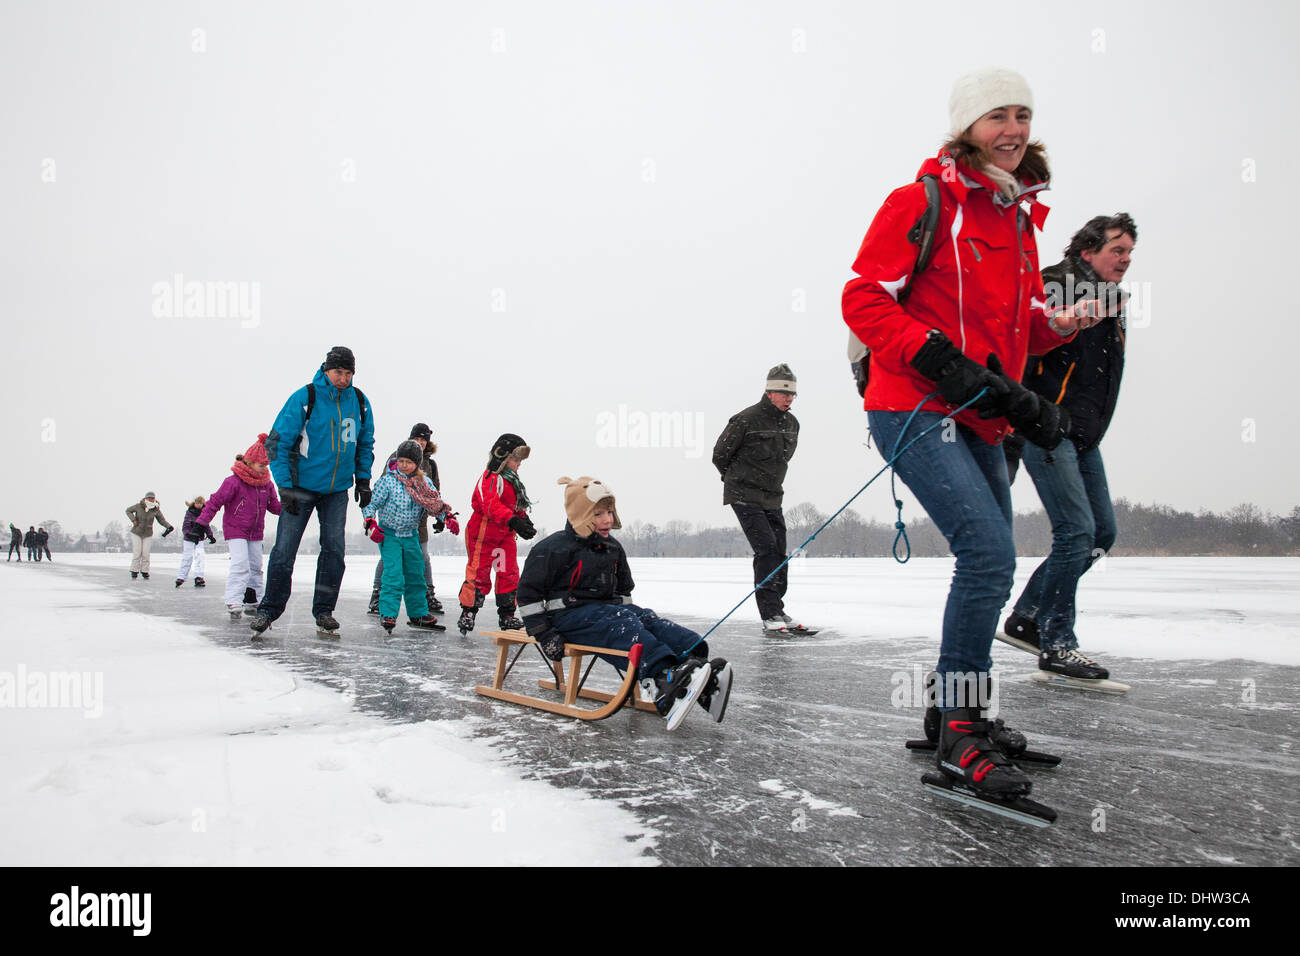 Netherlands, Loosdrecht, Lakes called Loosdrechtse Plassen. Winter. Family ice skating with sledge - Stock Image